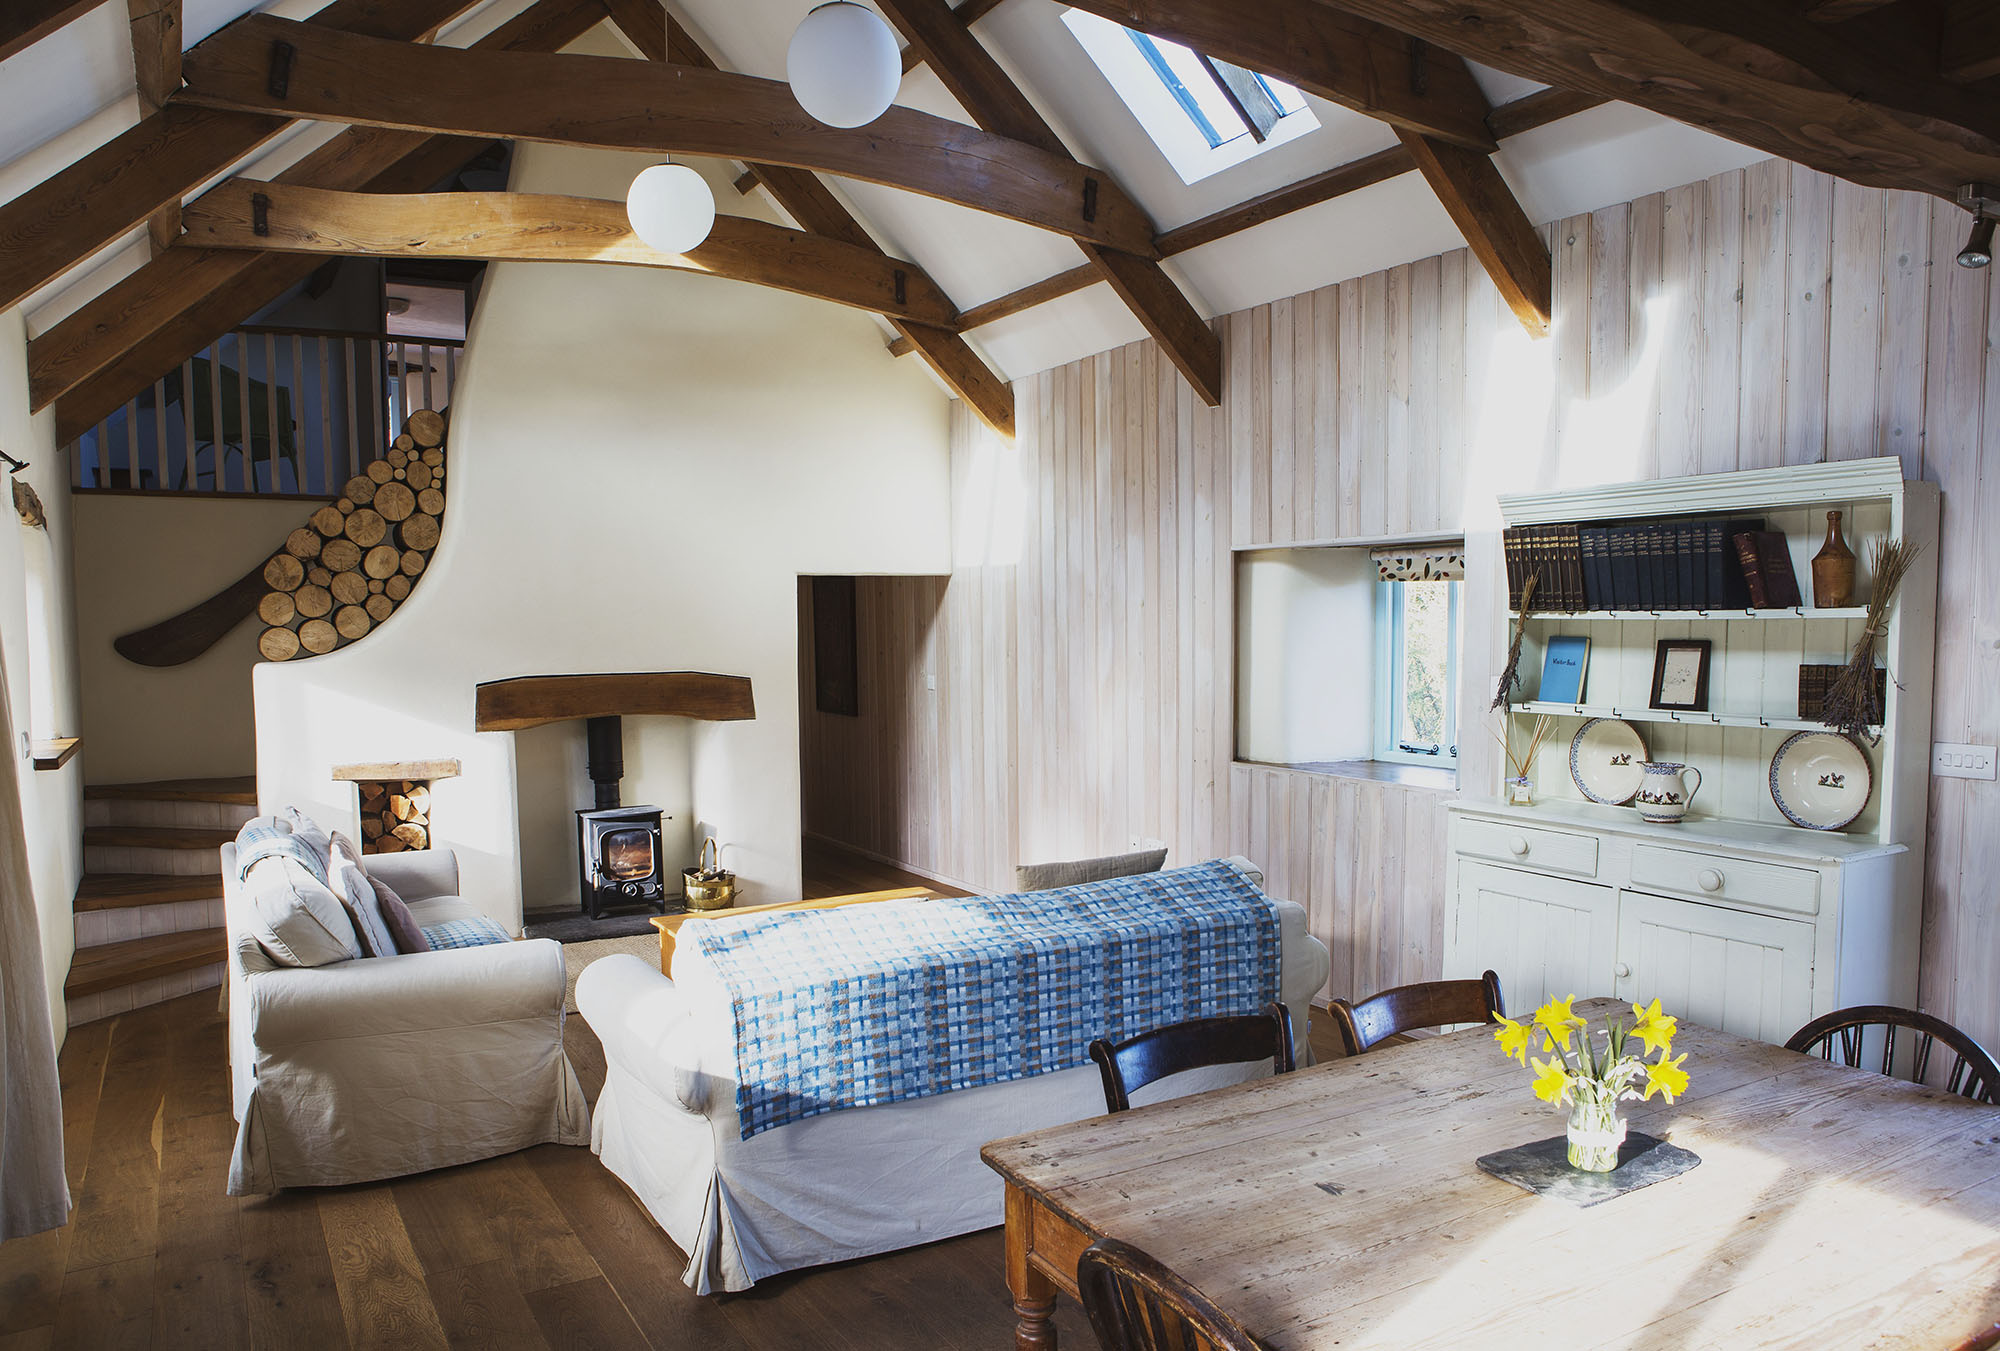 nantwen holiday cottage and runaway wedding venue interior photograph in pembrokeshire